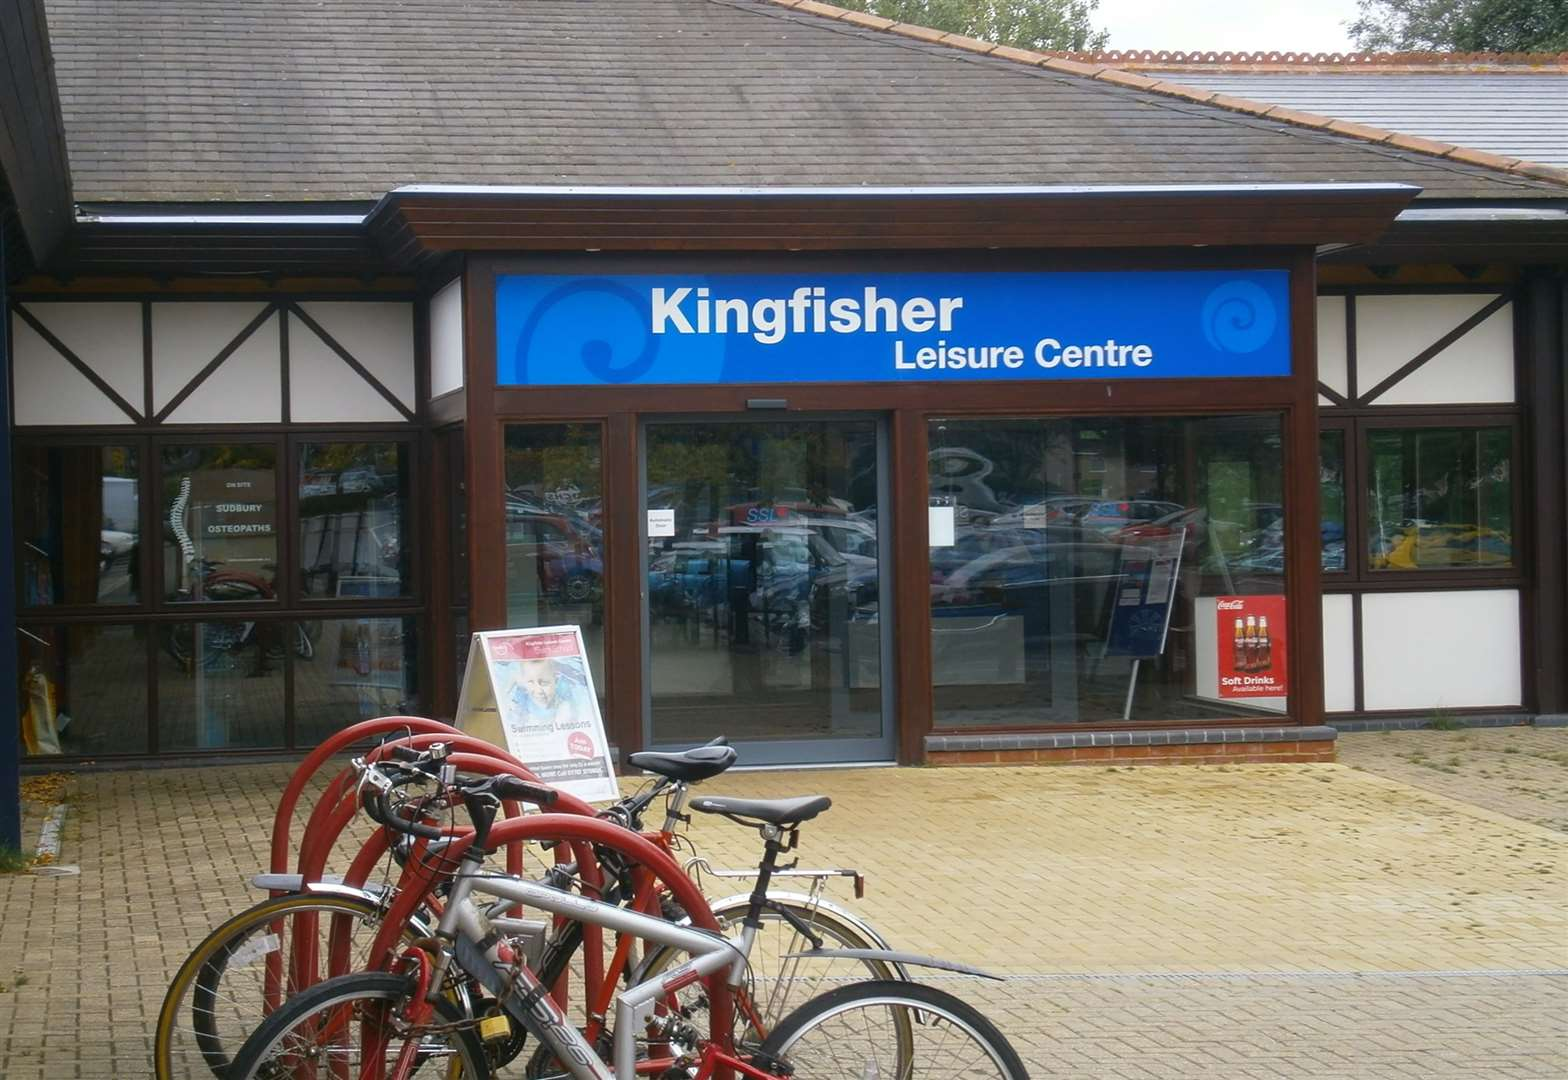 Kingfisher Leisure Centre in Sudbury disrupted due to leak caused by roof lead theft